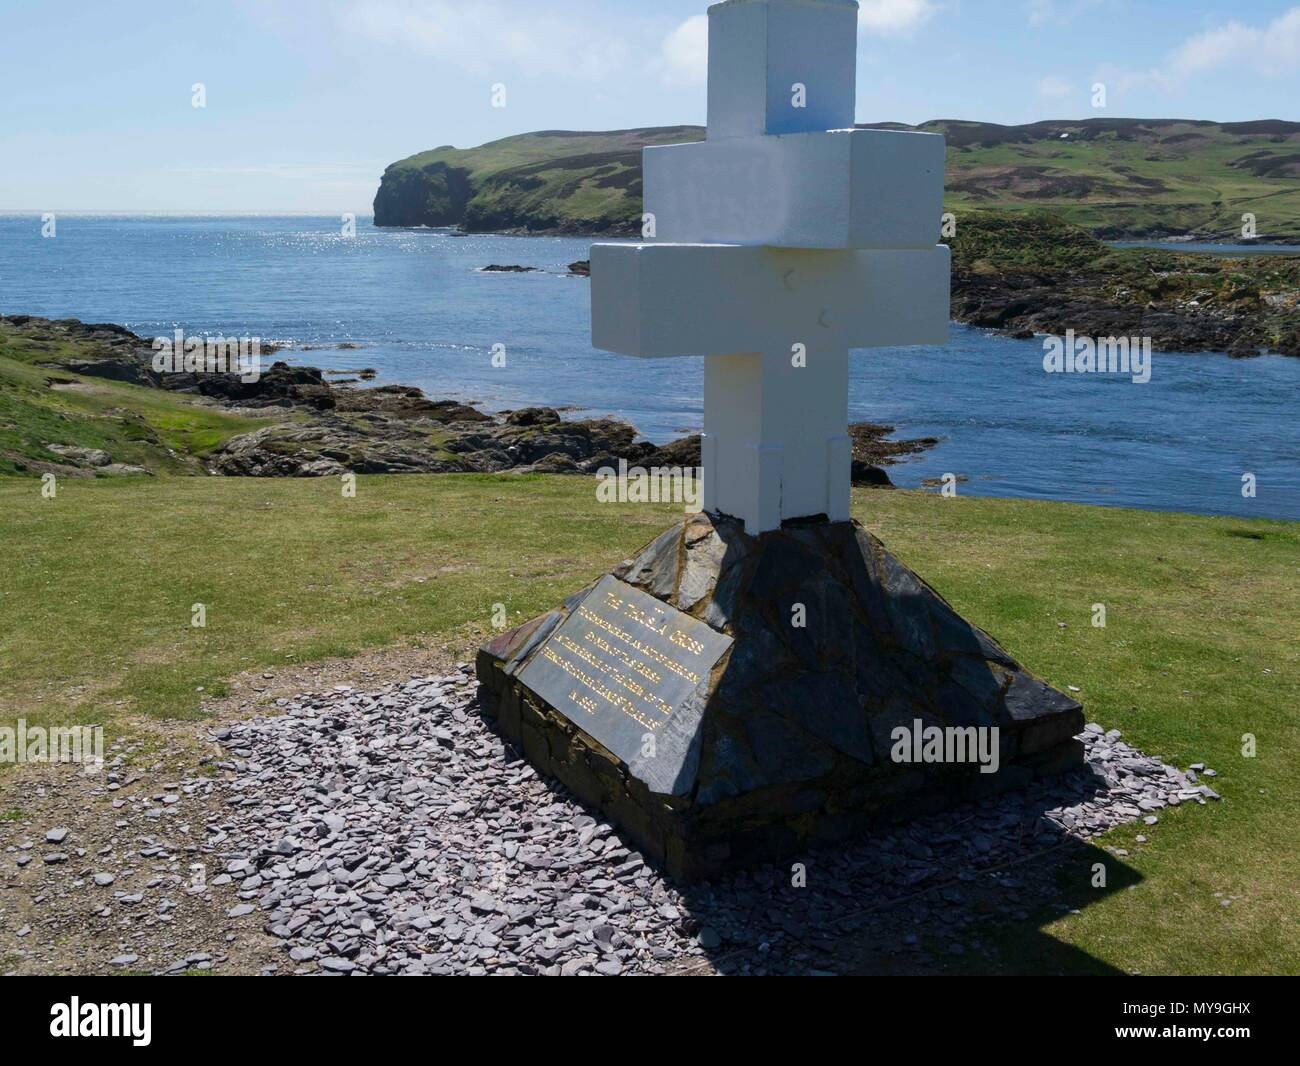 The Thoula Cross  commemorates the heroism by men of Parish in rescue of crew of French Schooner 'Jeane St Charles' in 1858 The Sound Isle of Man - Stock Image